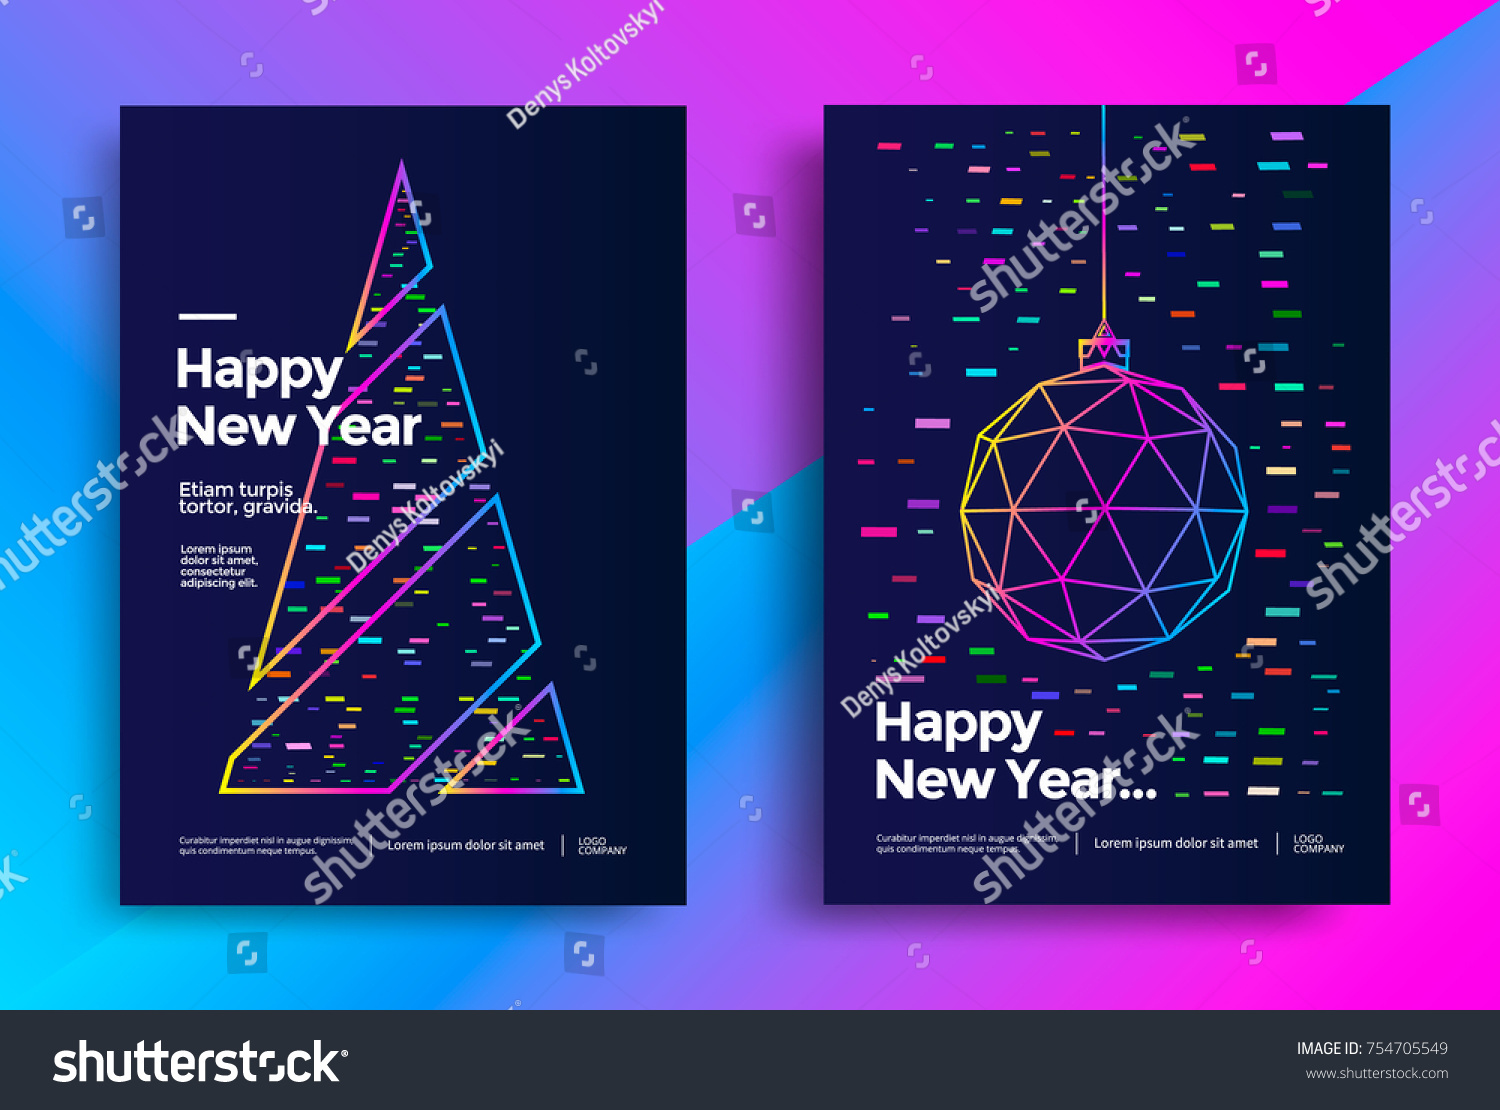 New Year greeting card design with stylized christmas ball and christmas tree. Vector illustration #754705549